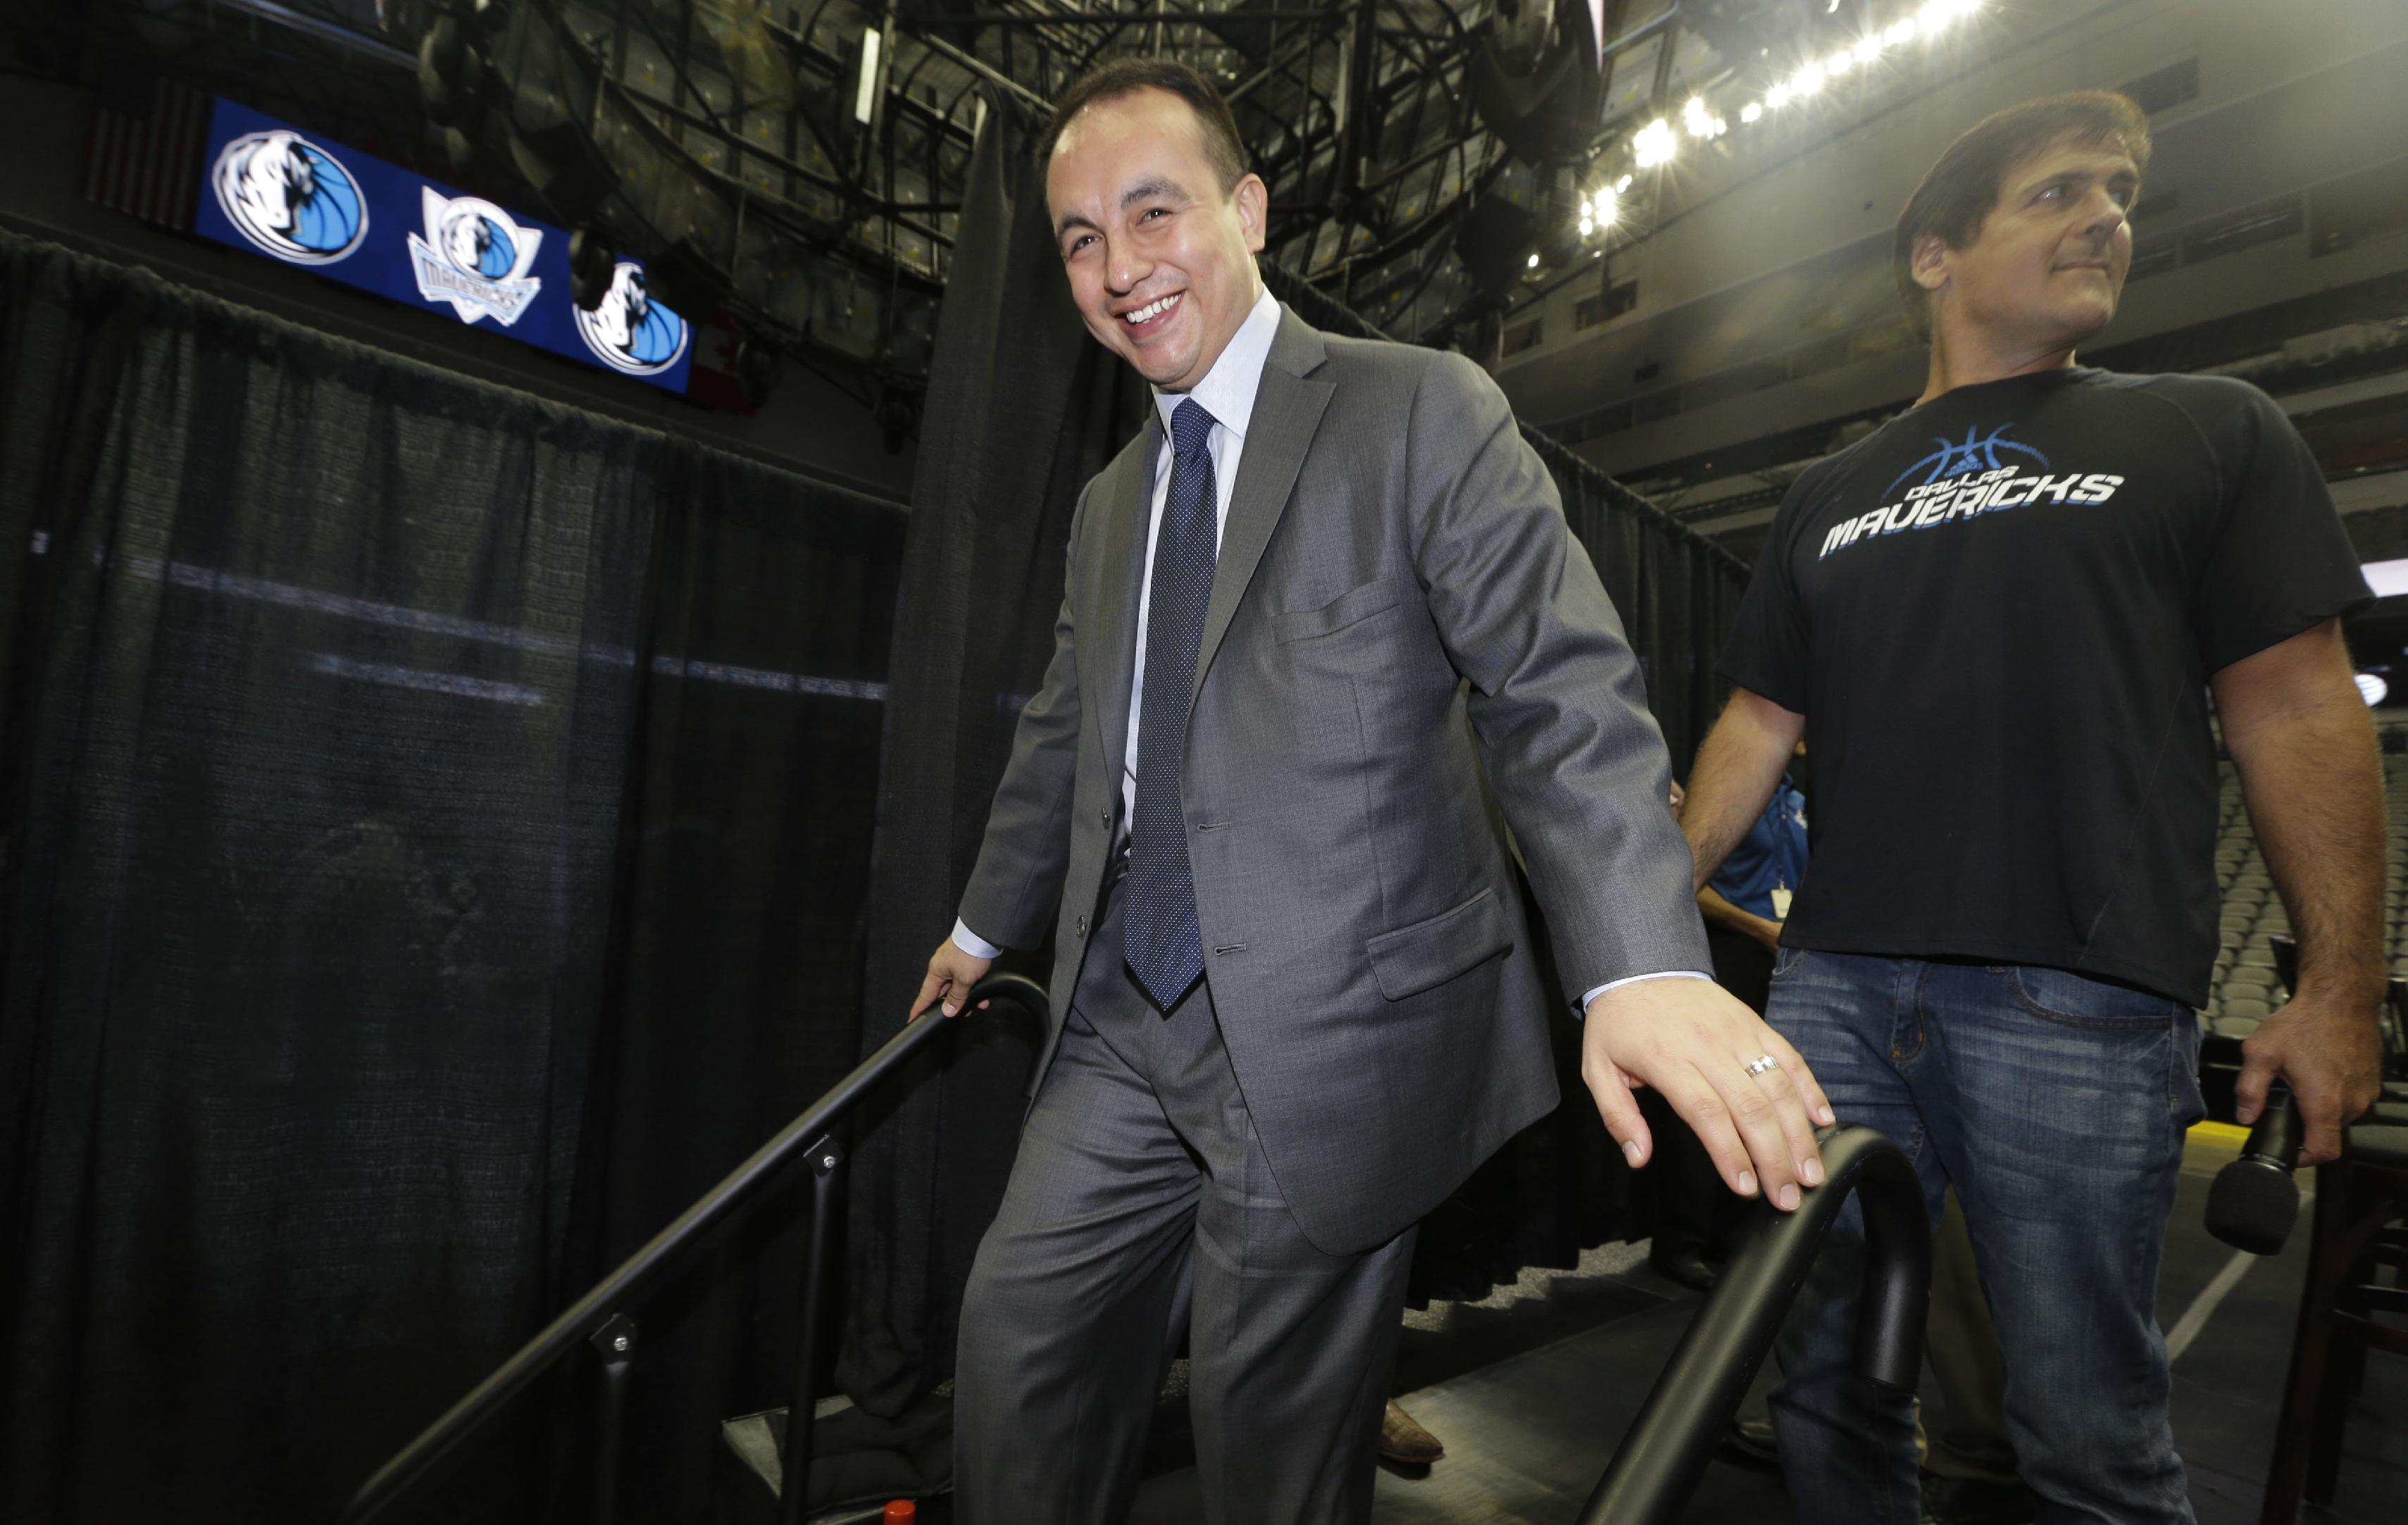 New Dallas Mavericks general manager Gersson Rosas walks off the stage after a news conference introducing free agents signed to the NBA basketball team in the offseason, Thursday, Aug. 15, 2013, in Dallas